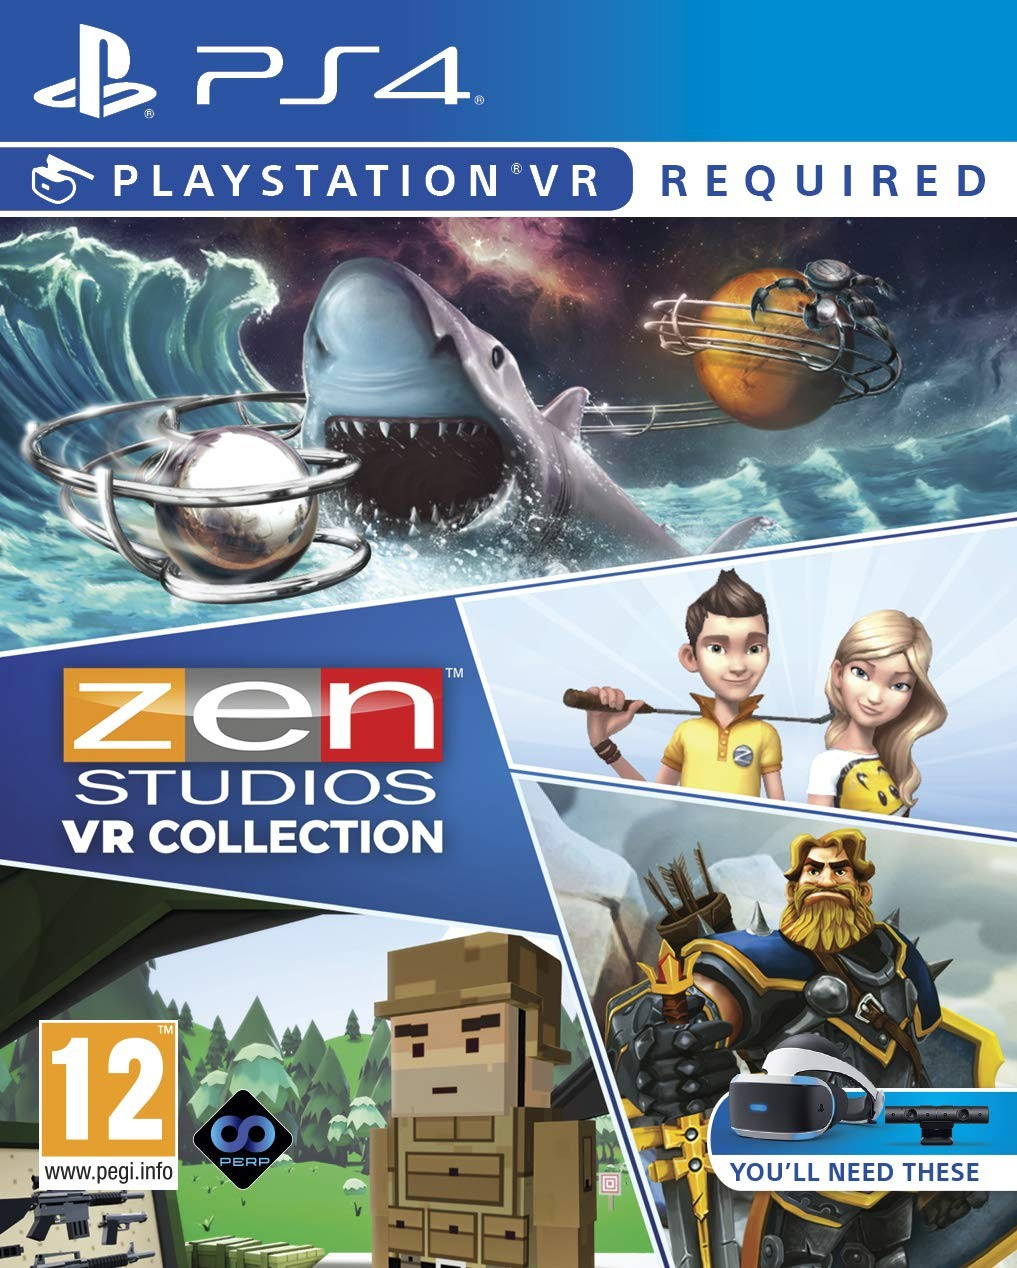 Zen Studios VR Collection PS4